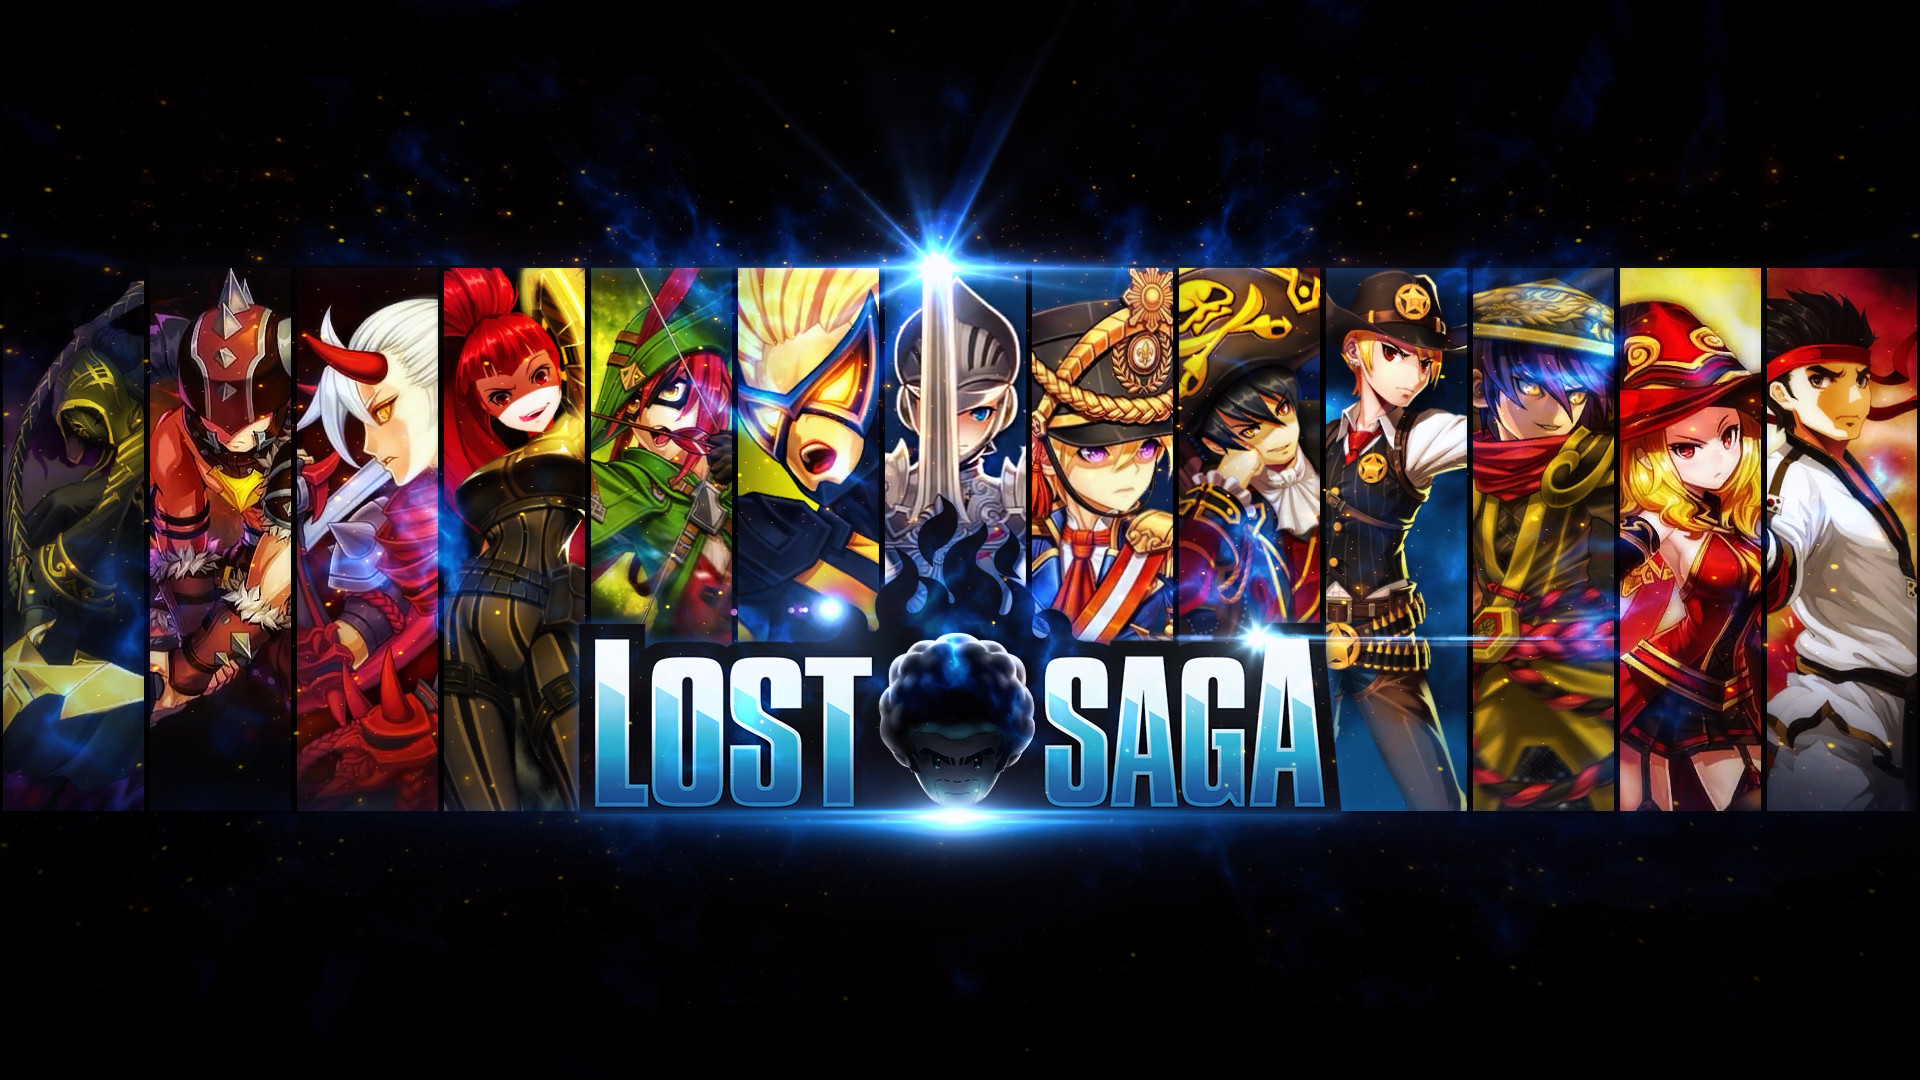 lost saga wallpapers (72+ images)